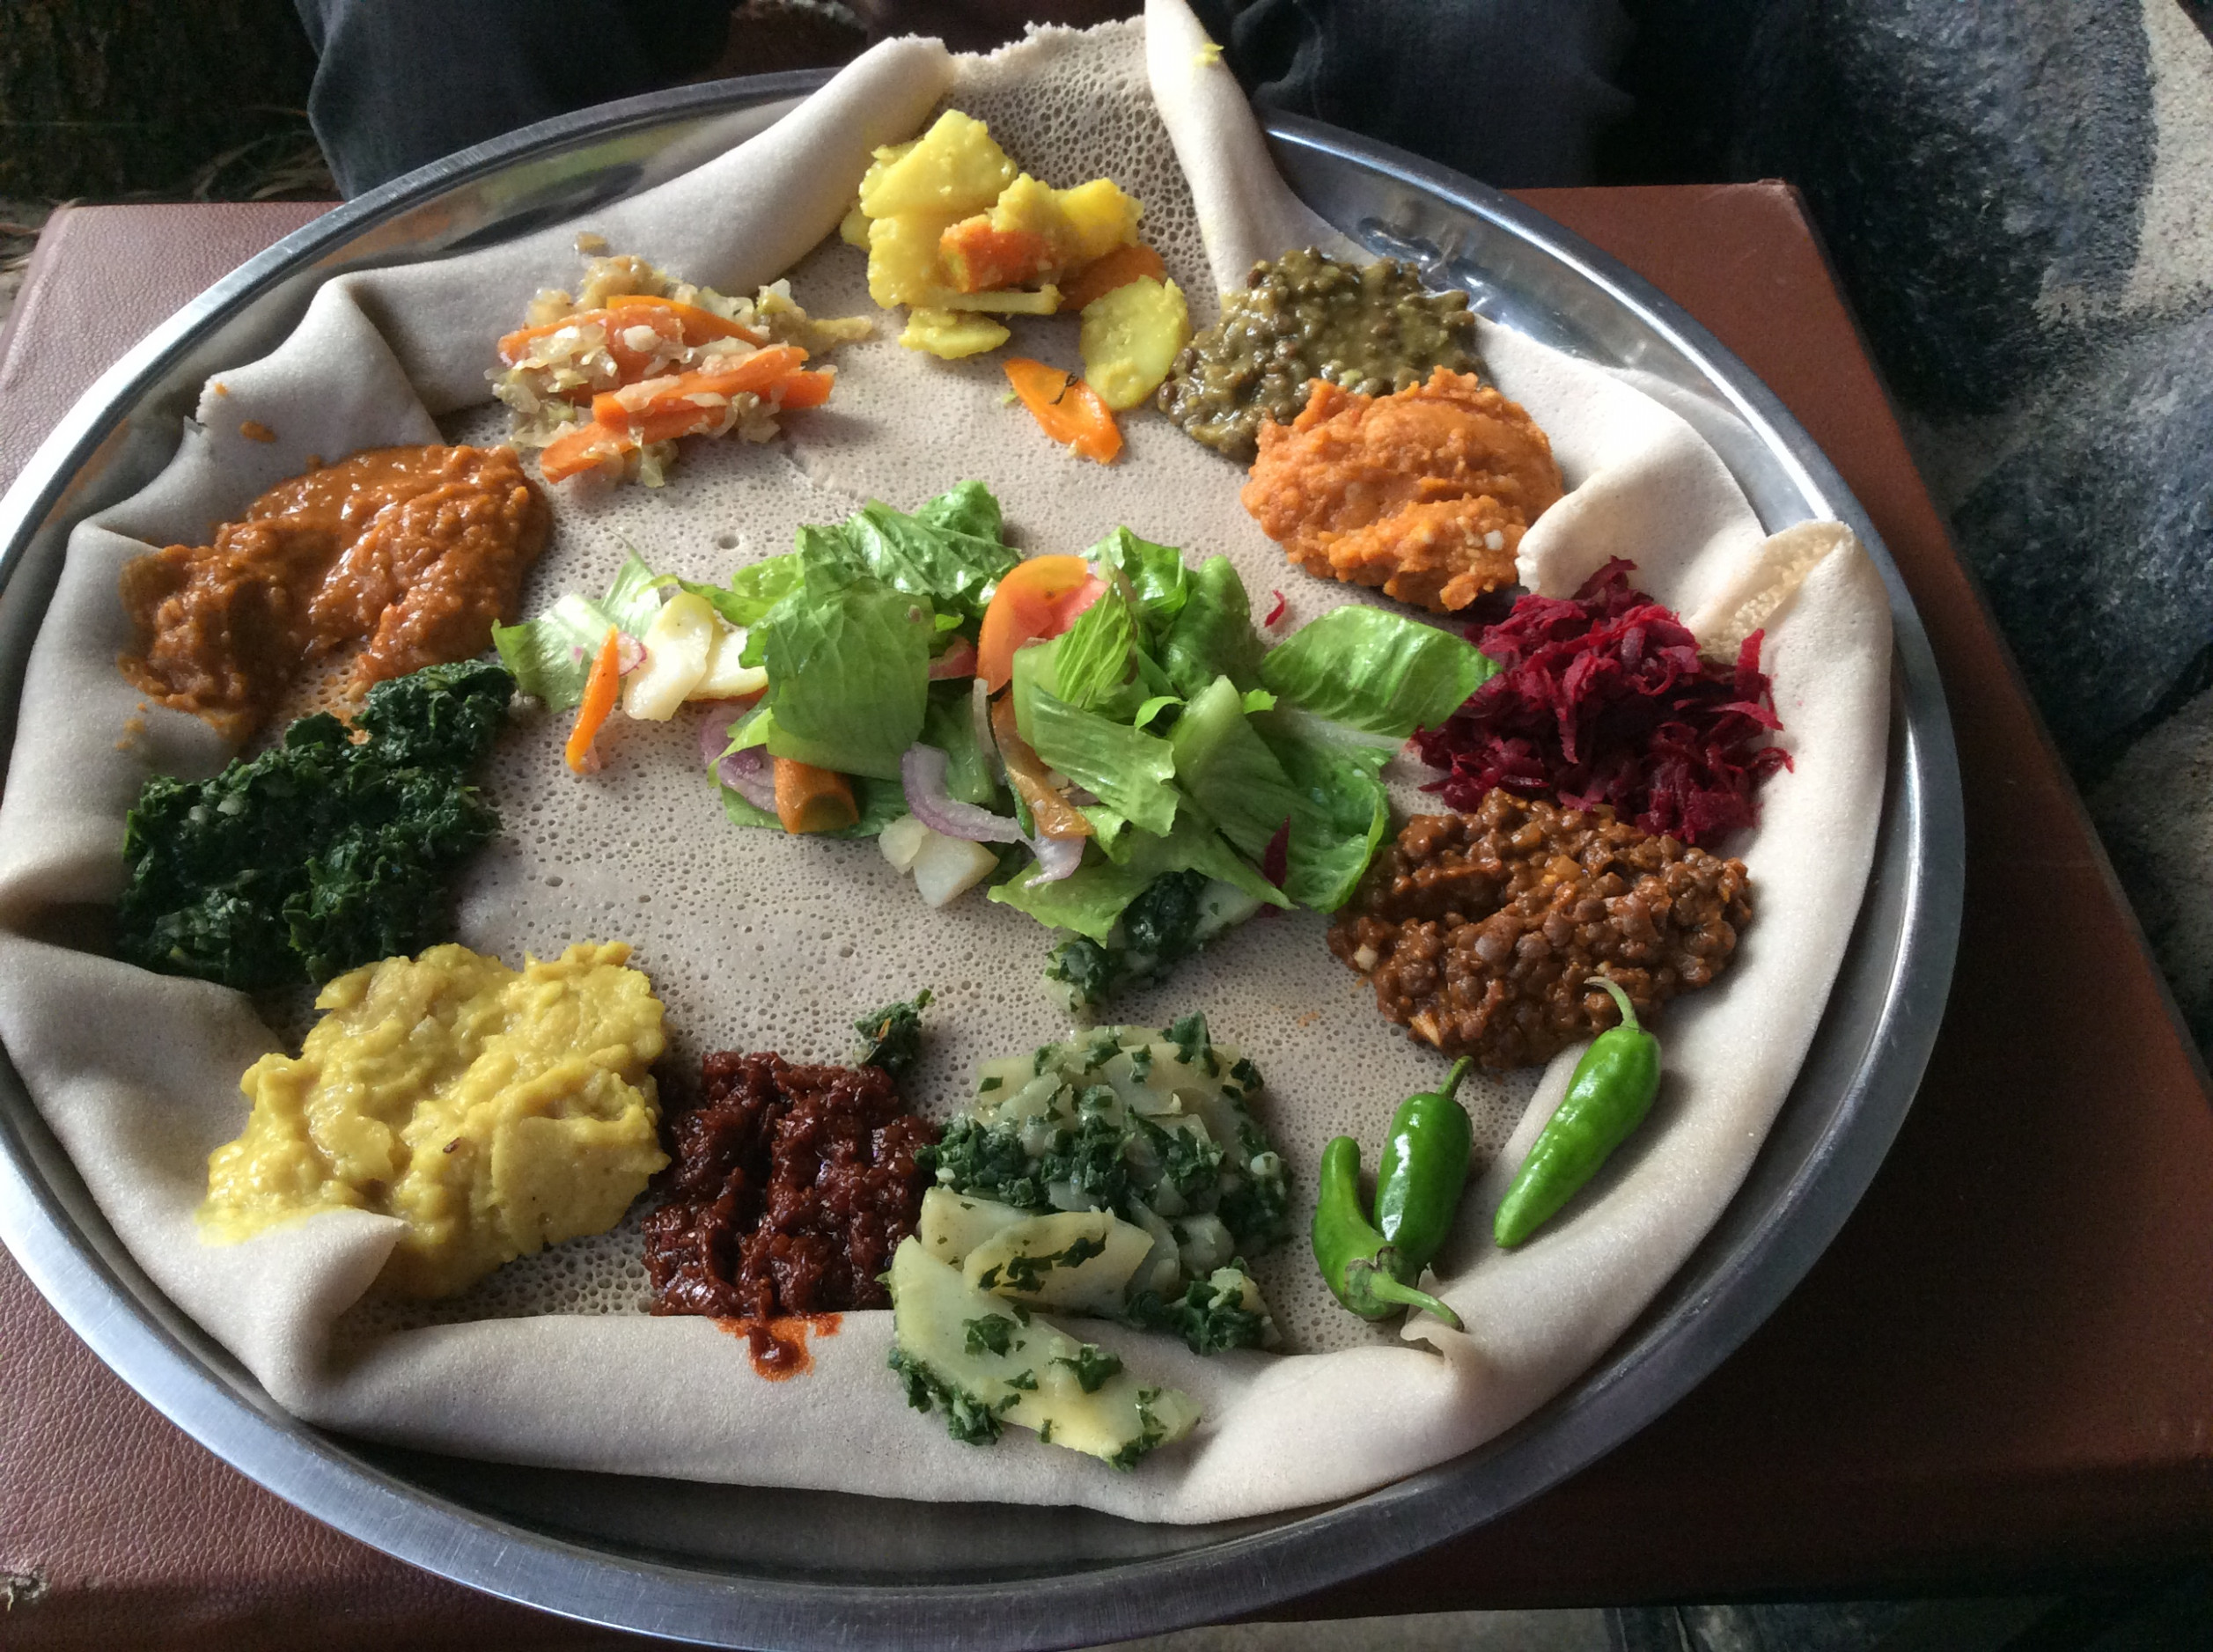 Vegetarian in Ethiopia | The Nomadic Vegetarian - ethiopian recipes vegetarian